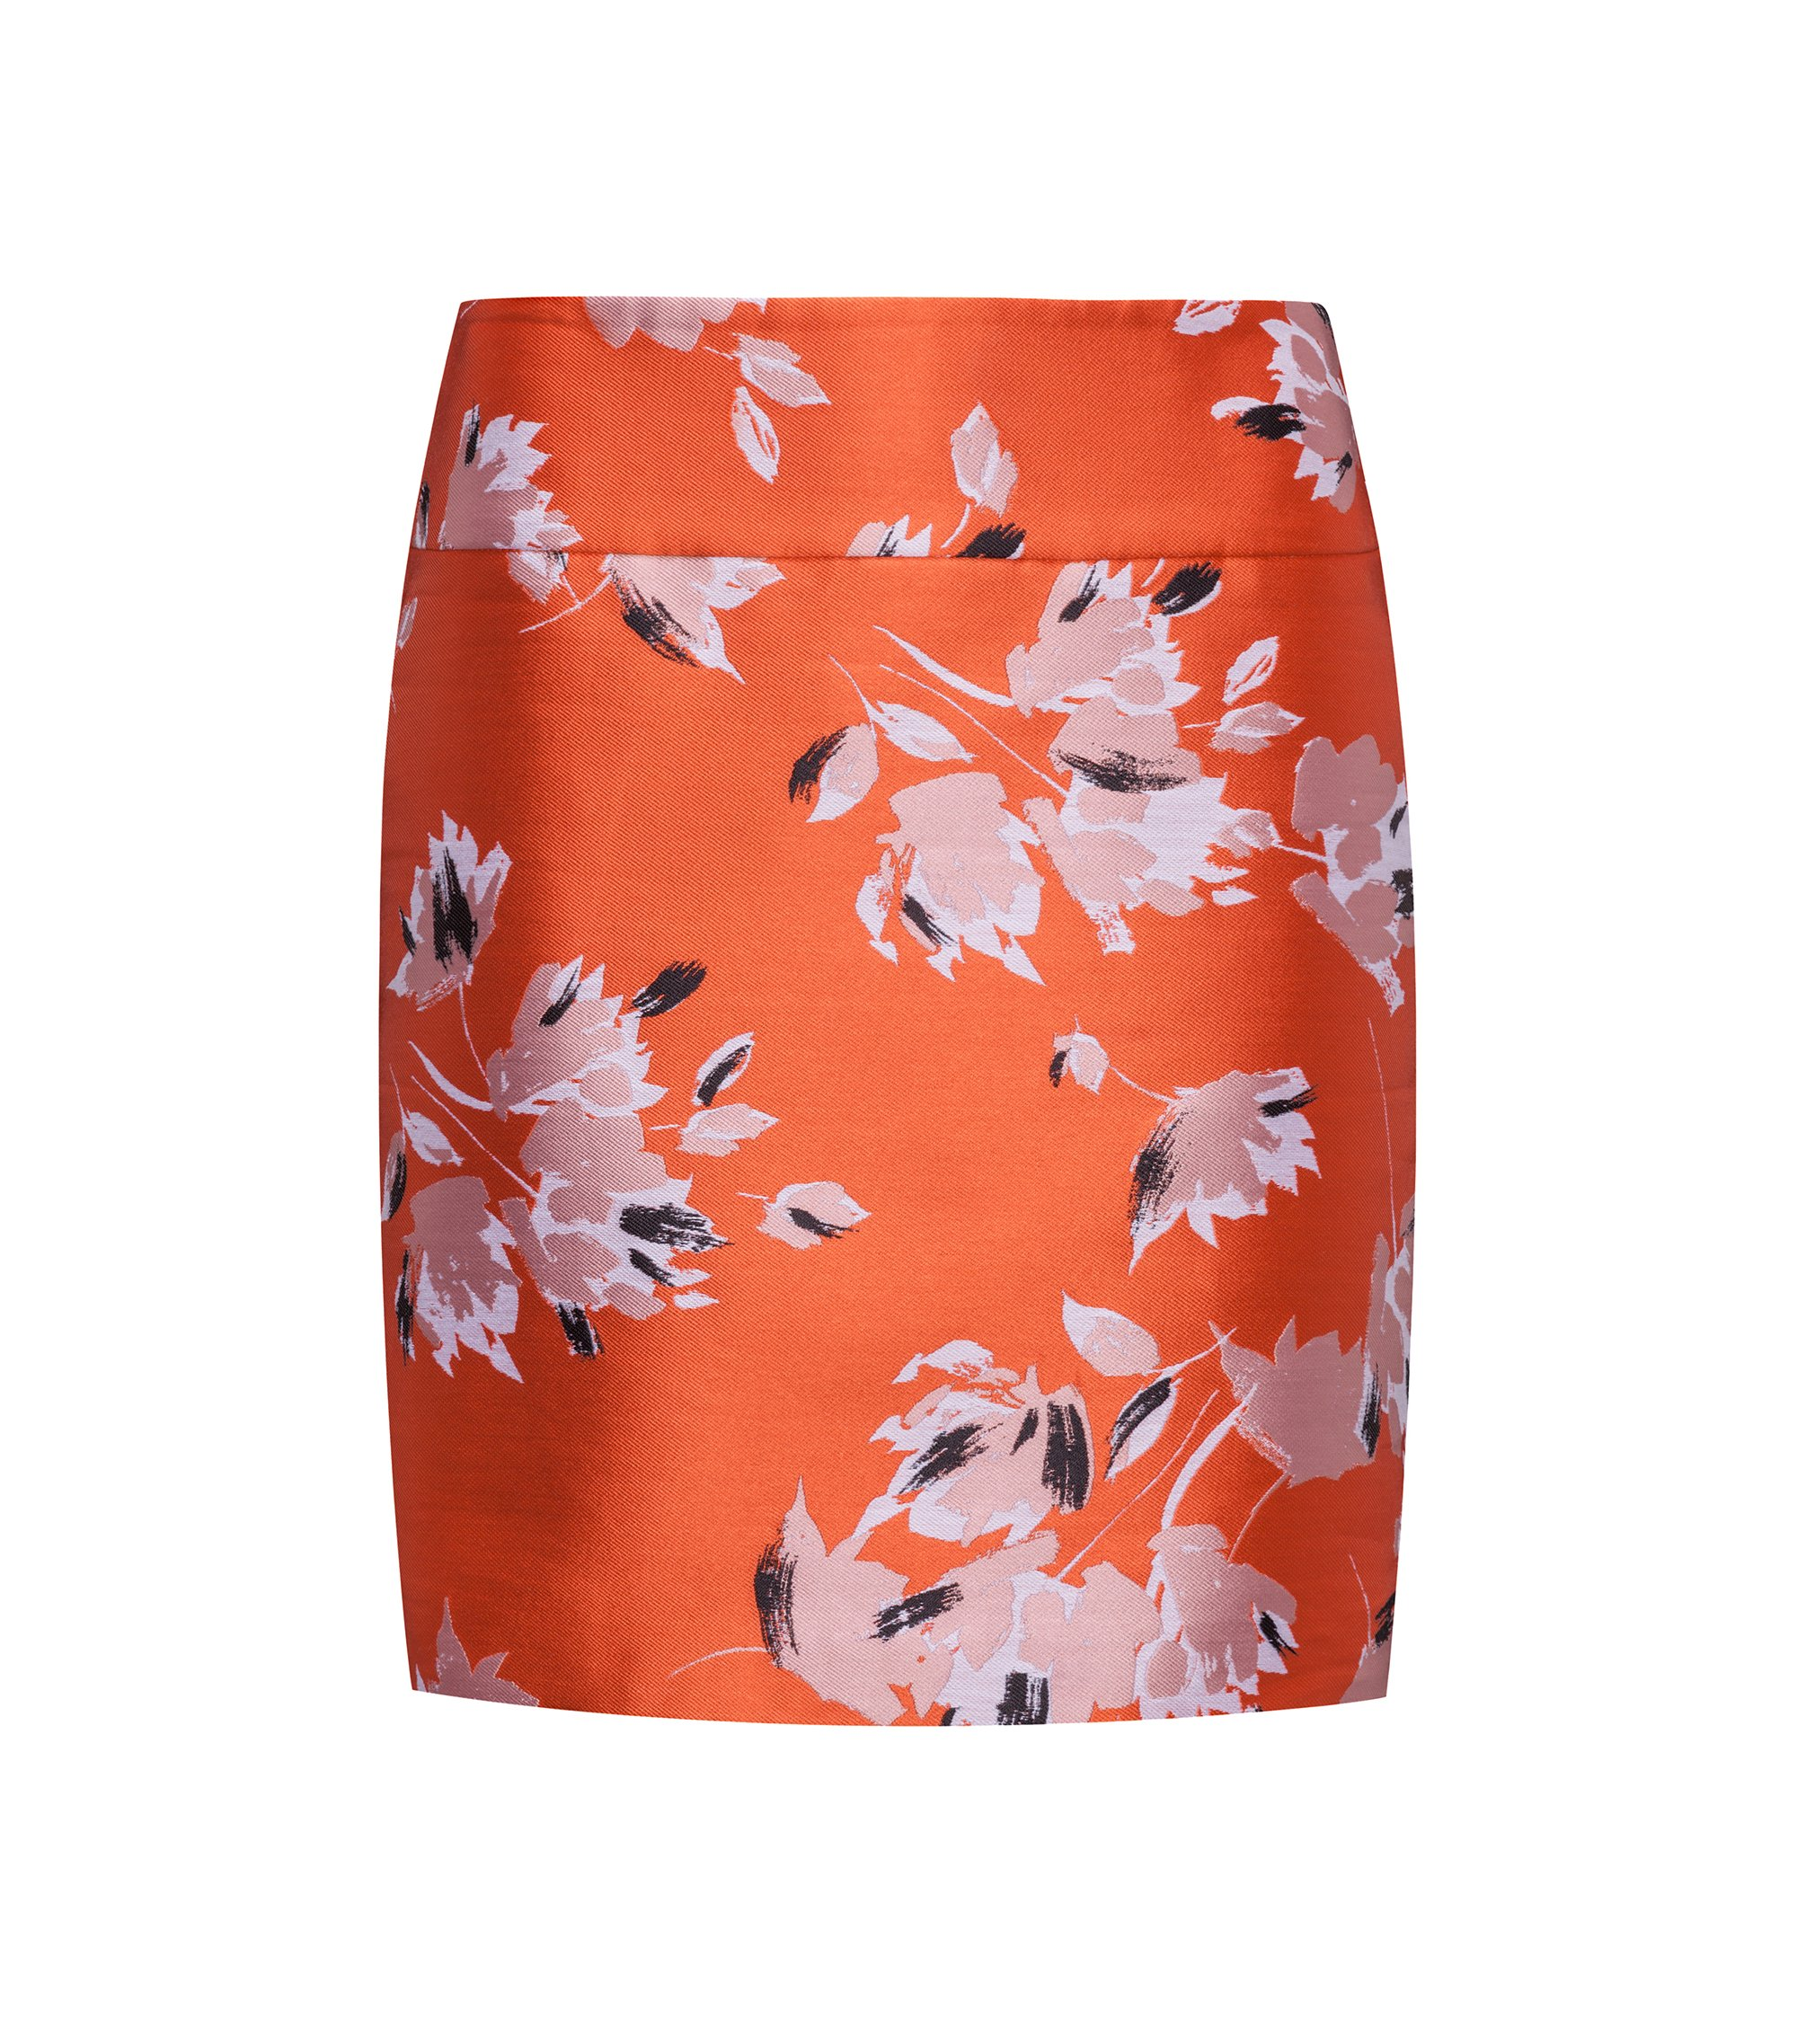 Mini skirt in floral jacquard, Patterned